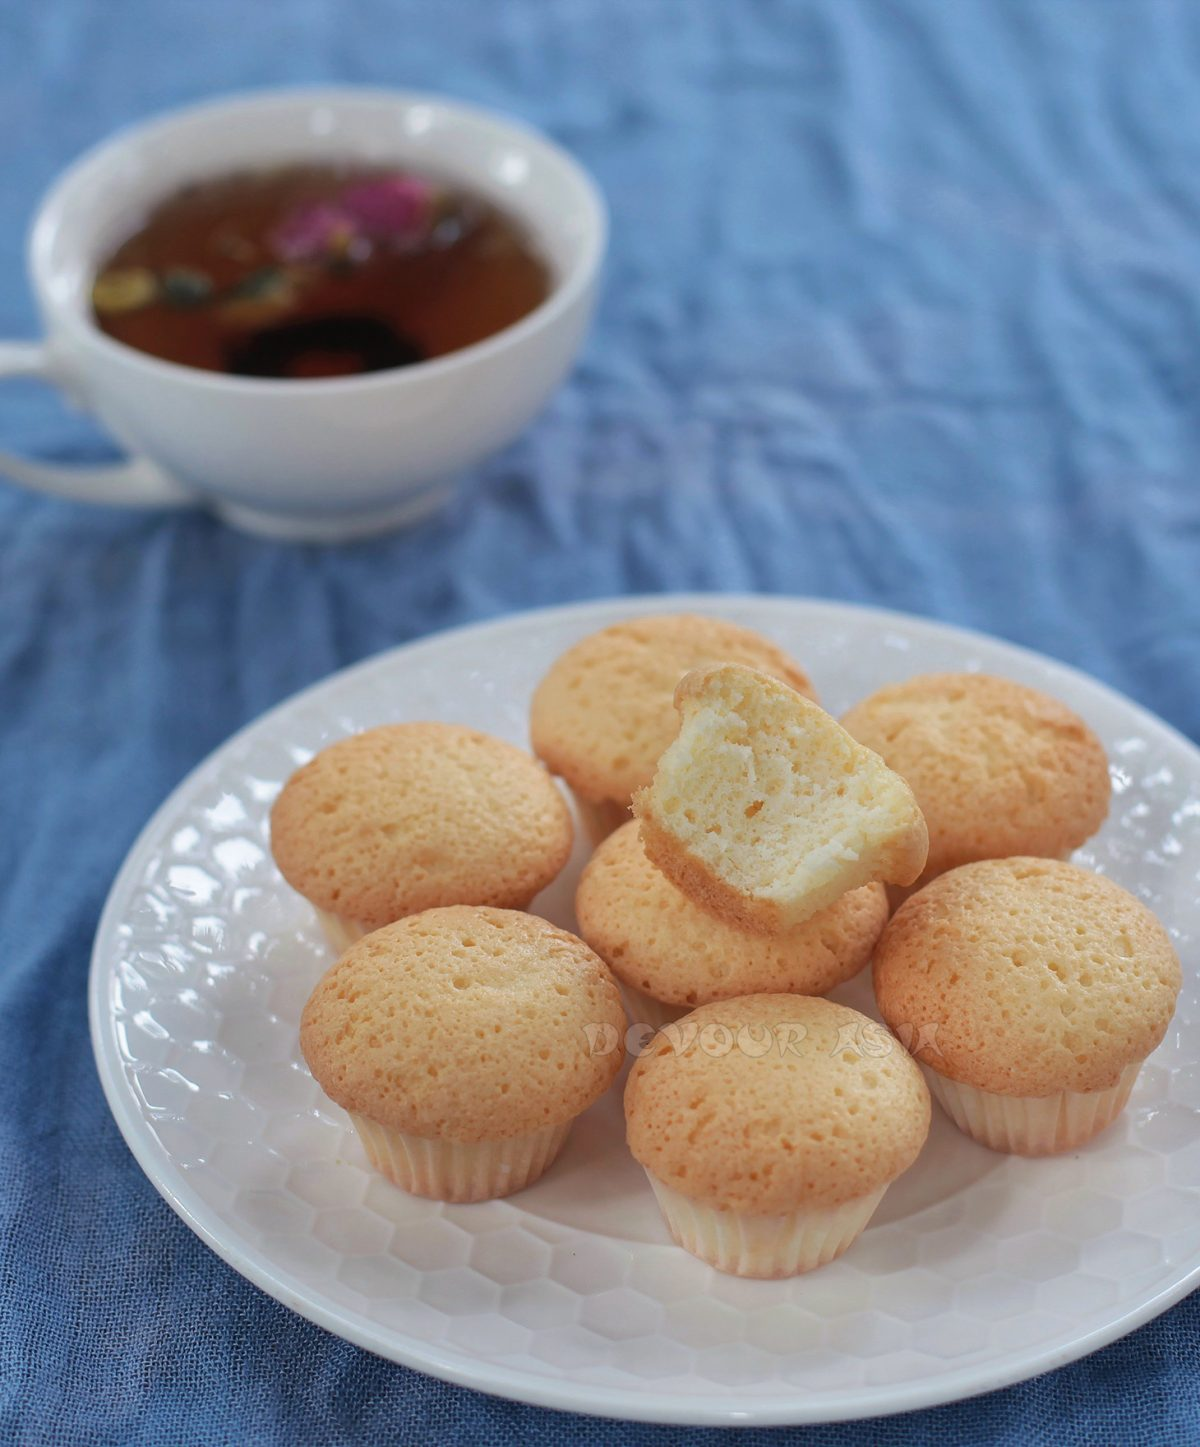 A plate of Chinese egg cakes and a cup of tea